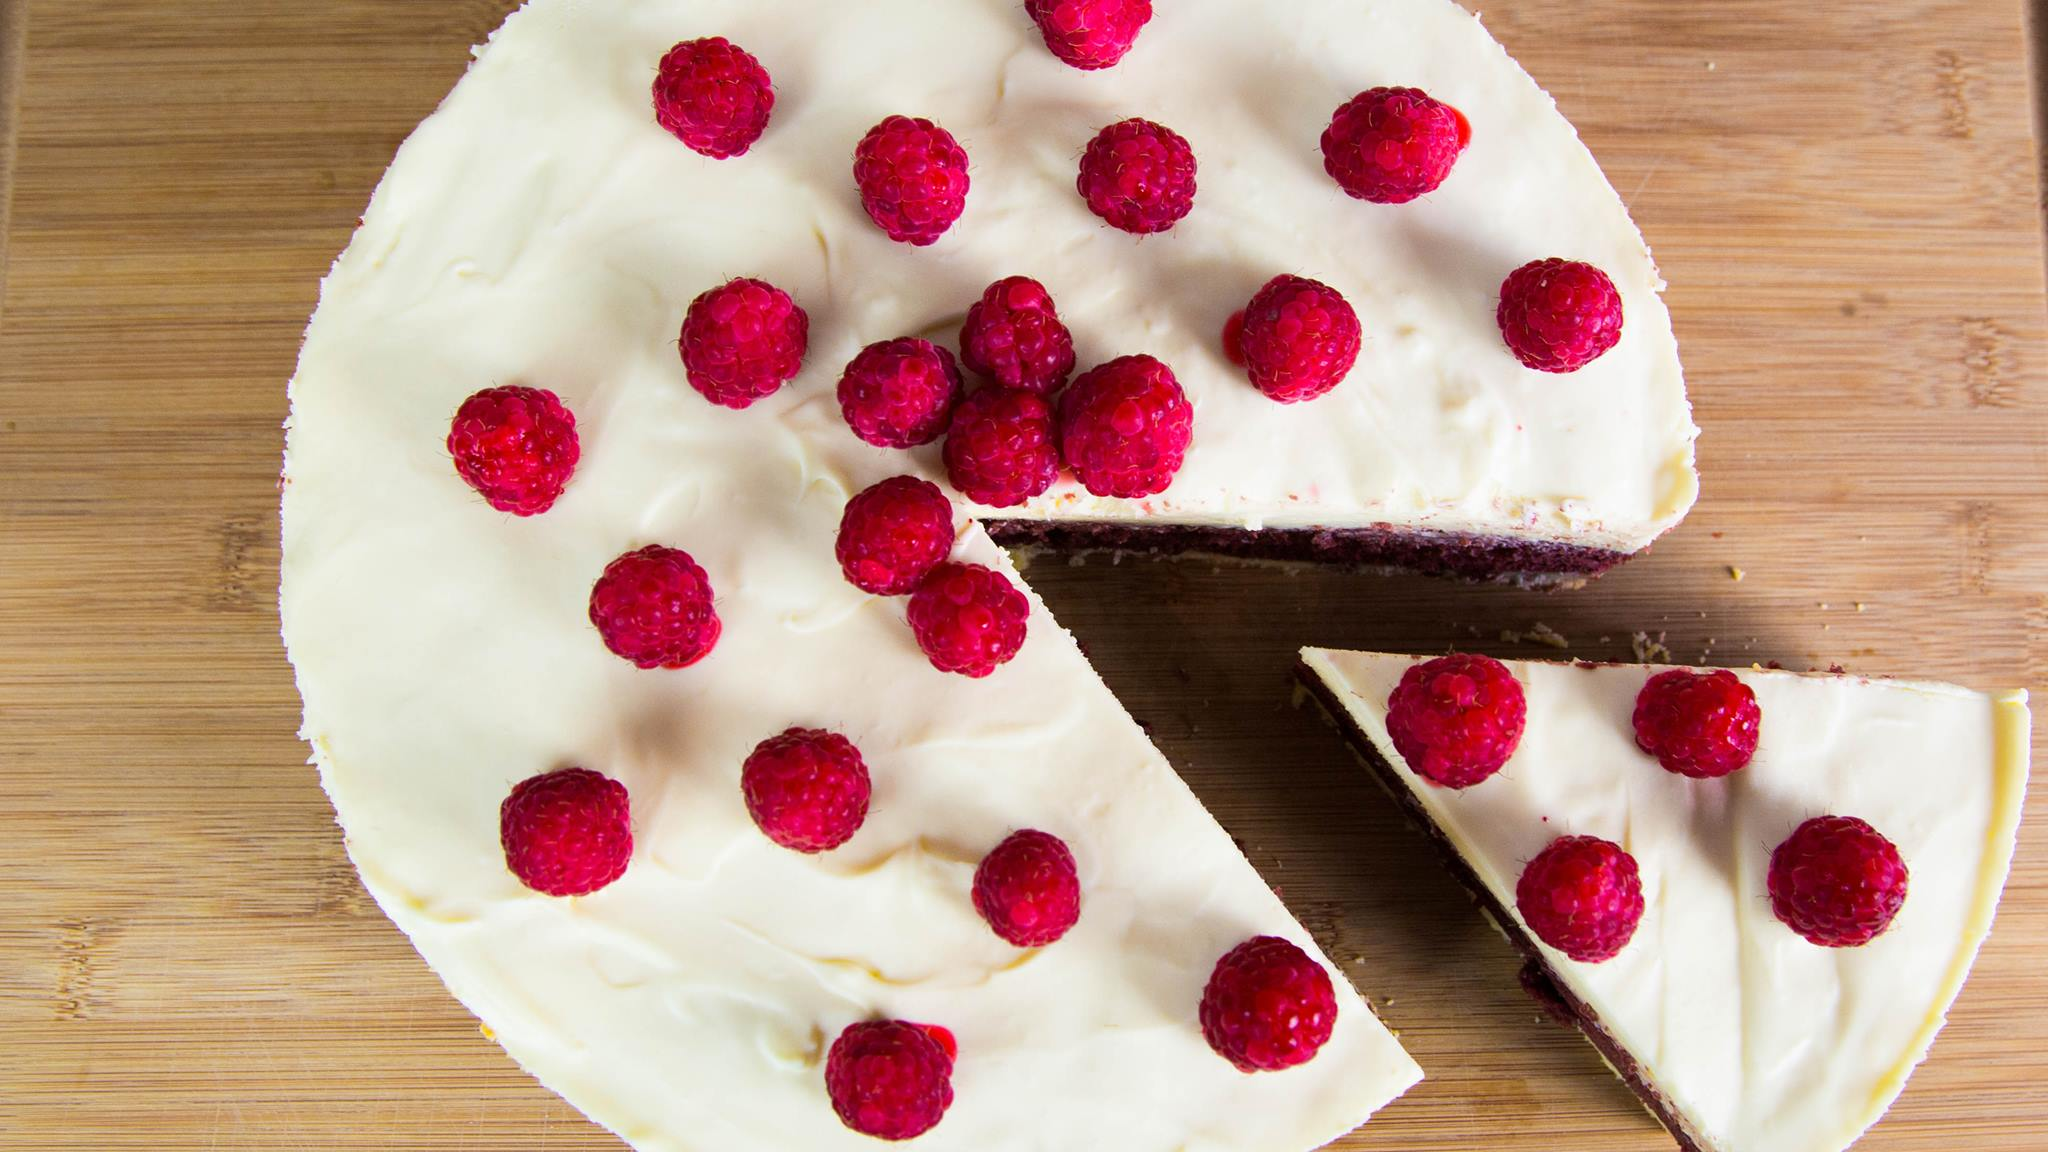 Heres How To Make Red Velvet And White Chocolate Cookie Cake 14074370 10208869642515988 1837609408 o